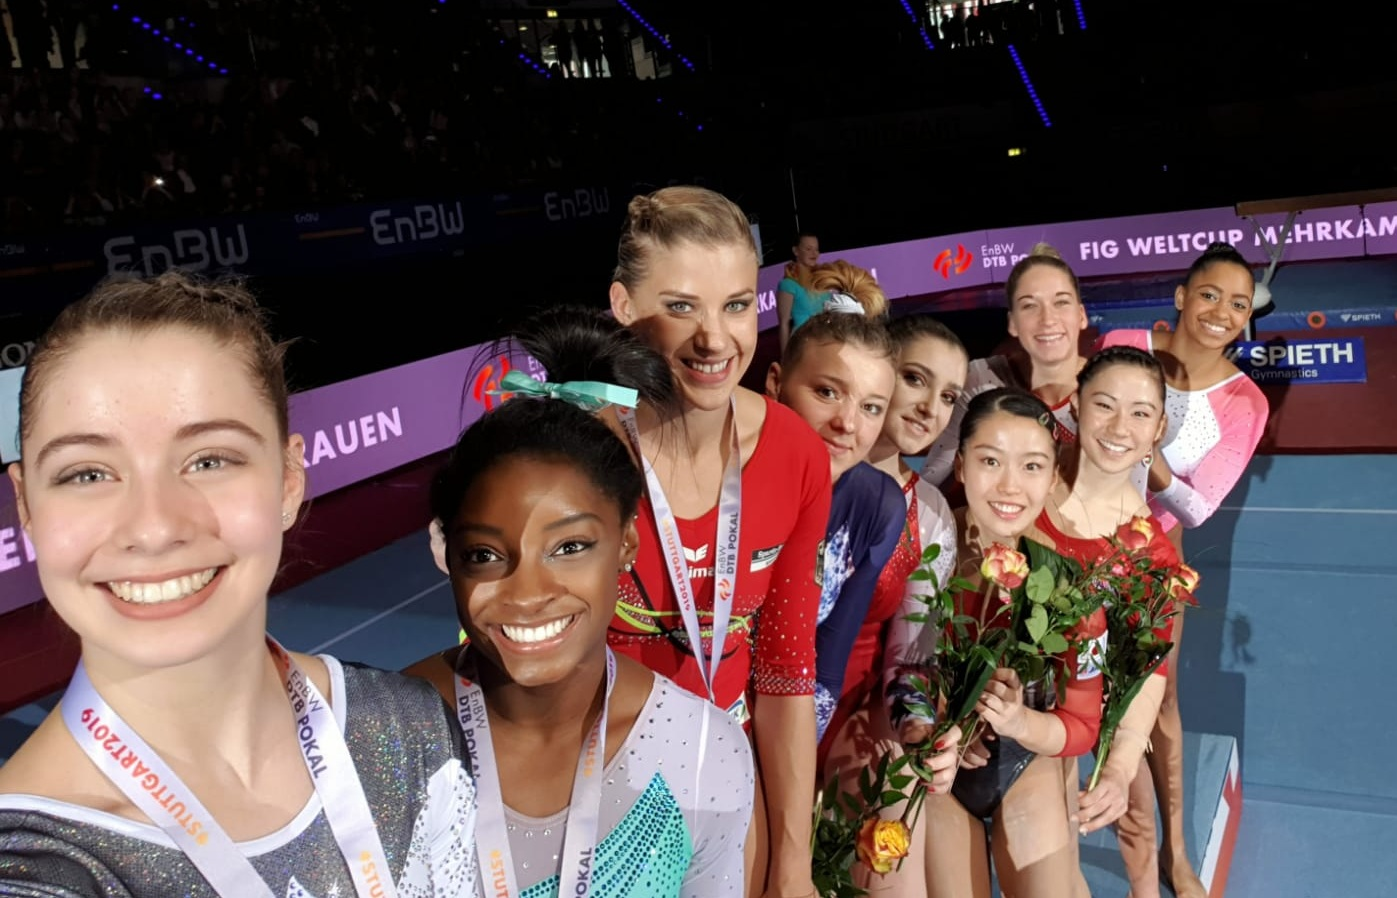 Podium+selfie+women%27s+AA+final.jpg